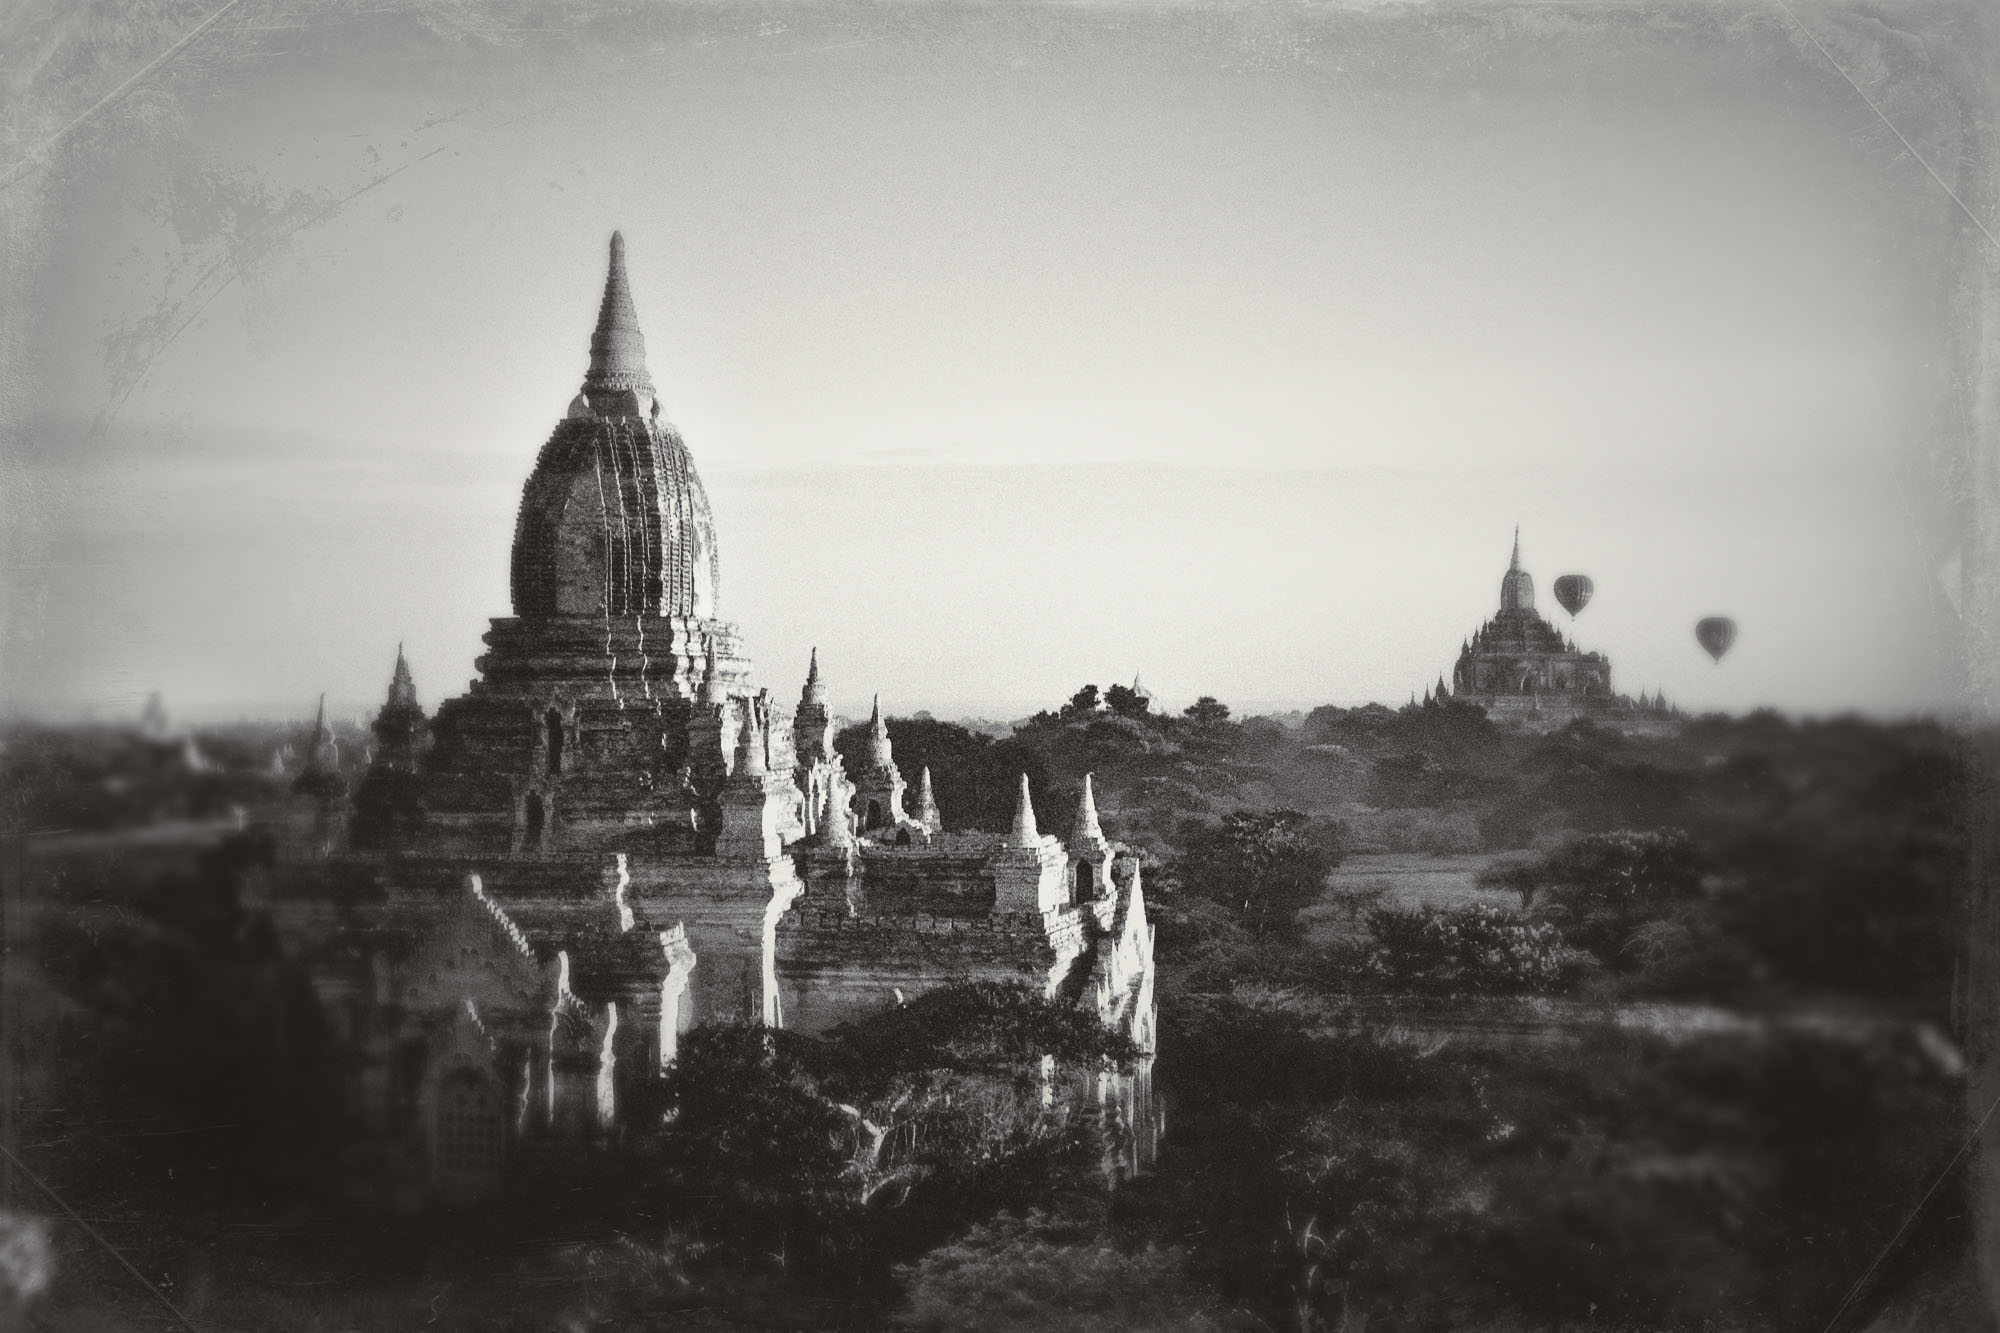 Myanmar, wet plate look